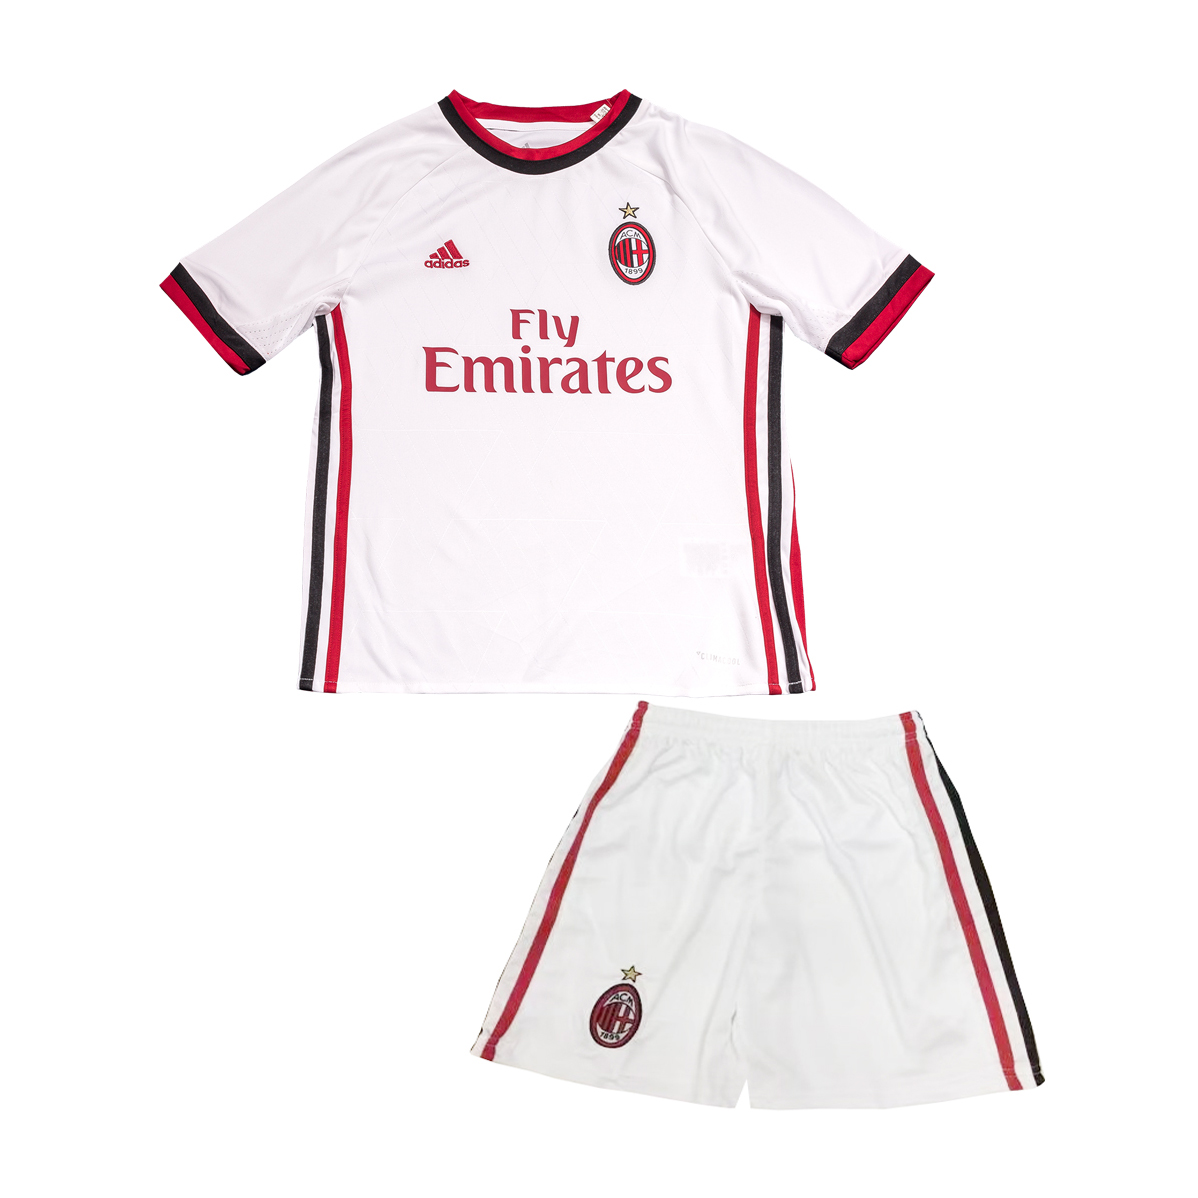 AC Milan Away Best Wholesale Football Kit 2017-18 Kids Soccer Kit Children Shirt And Shorts